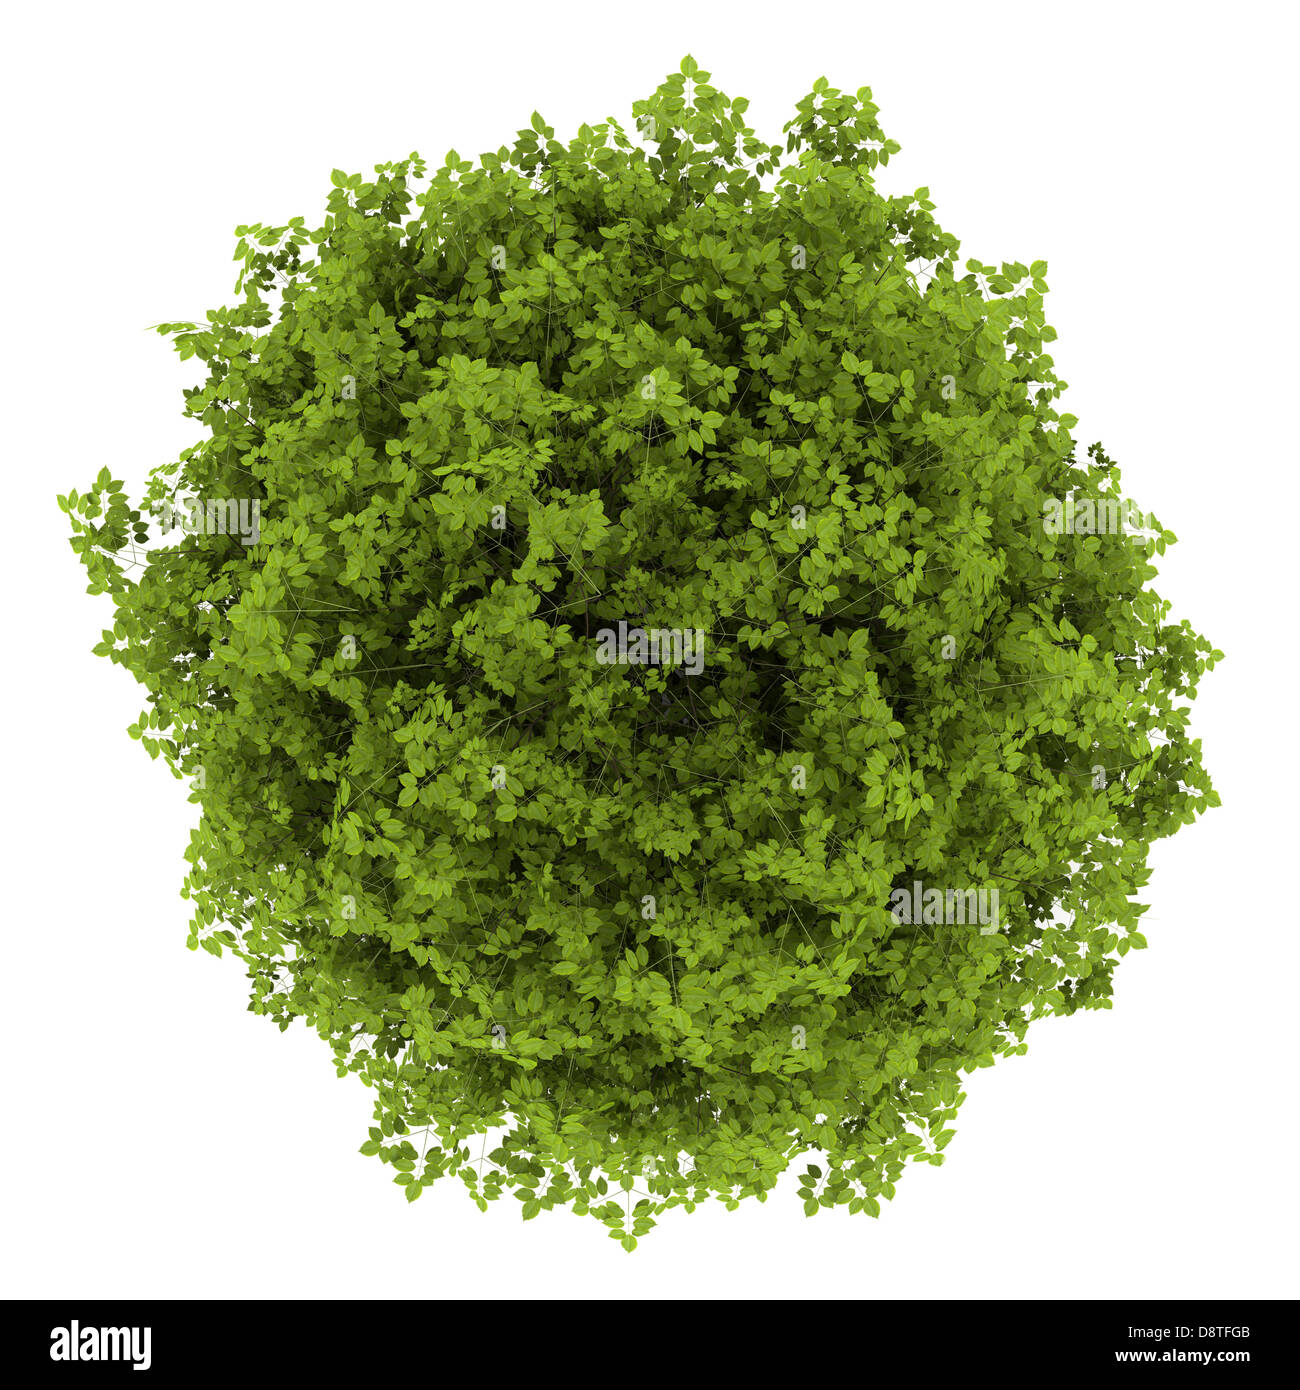 top view of euonymus verrucosa bush isolated - Stock Image